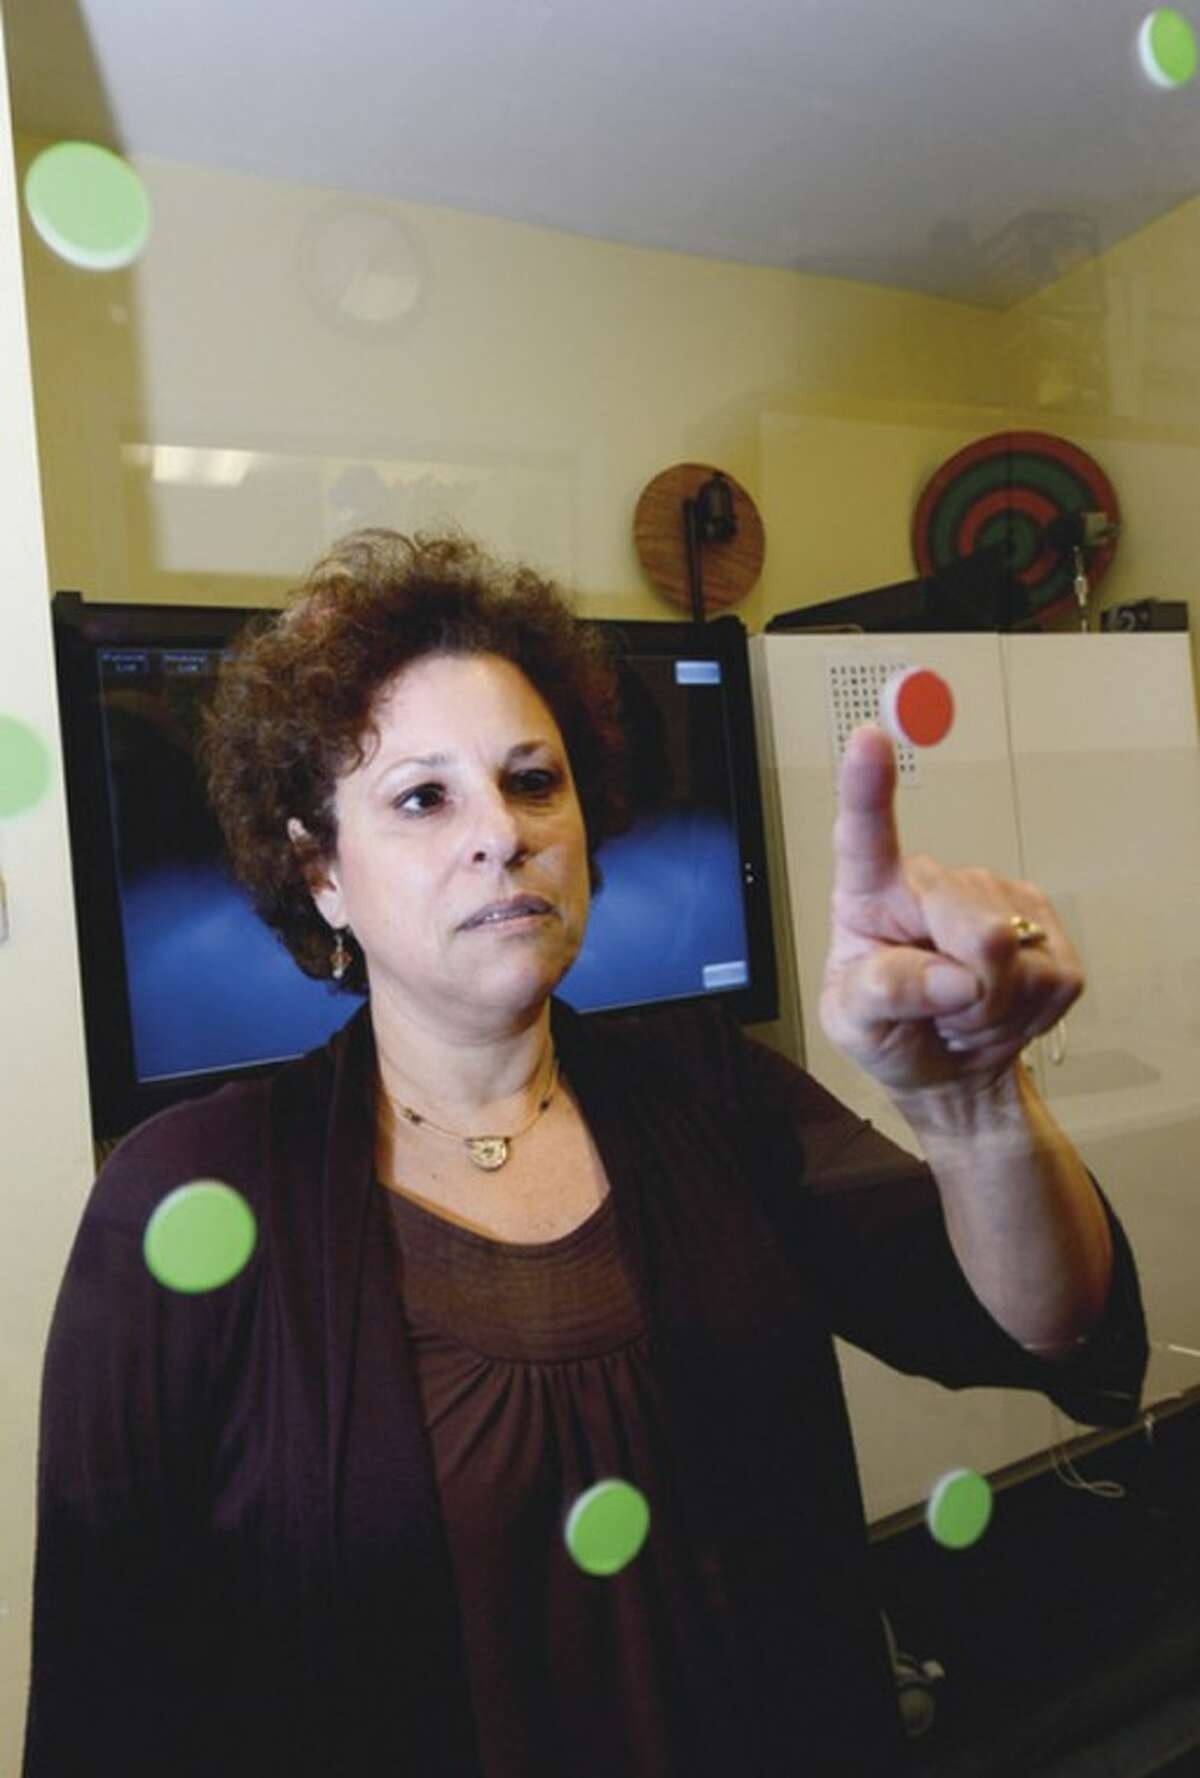 Debra Murray, therapist with The Center for Integrated Vision, works with providing eye exams for children to help determine whether they have visual learning disabilities.